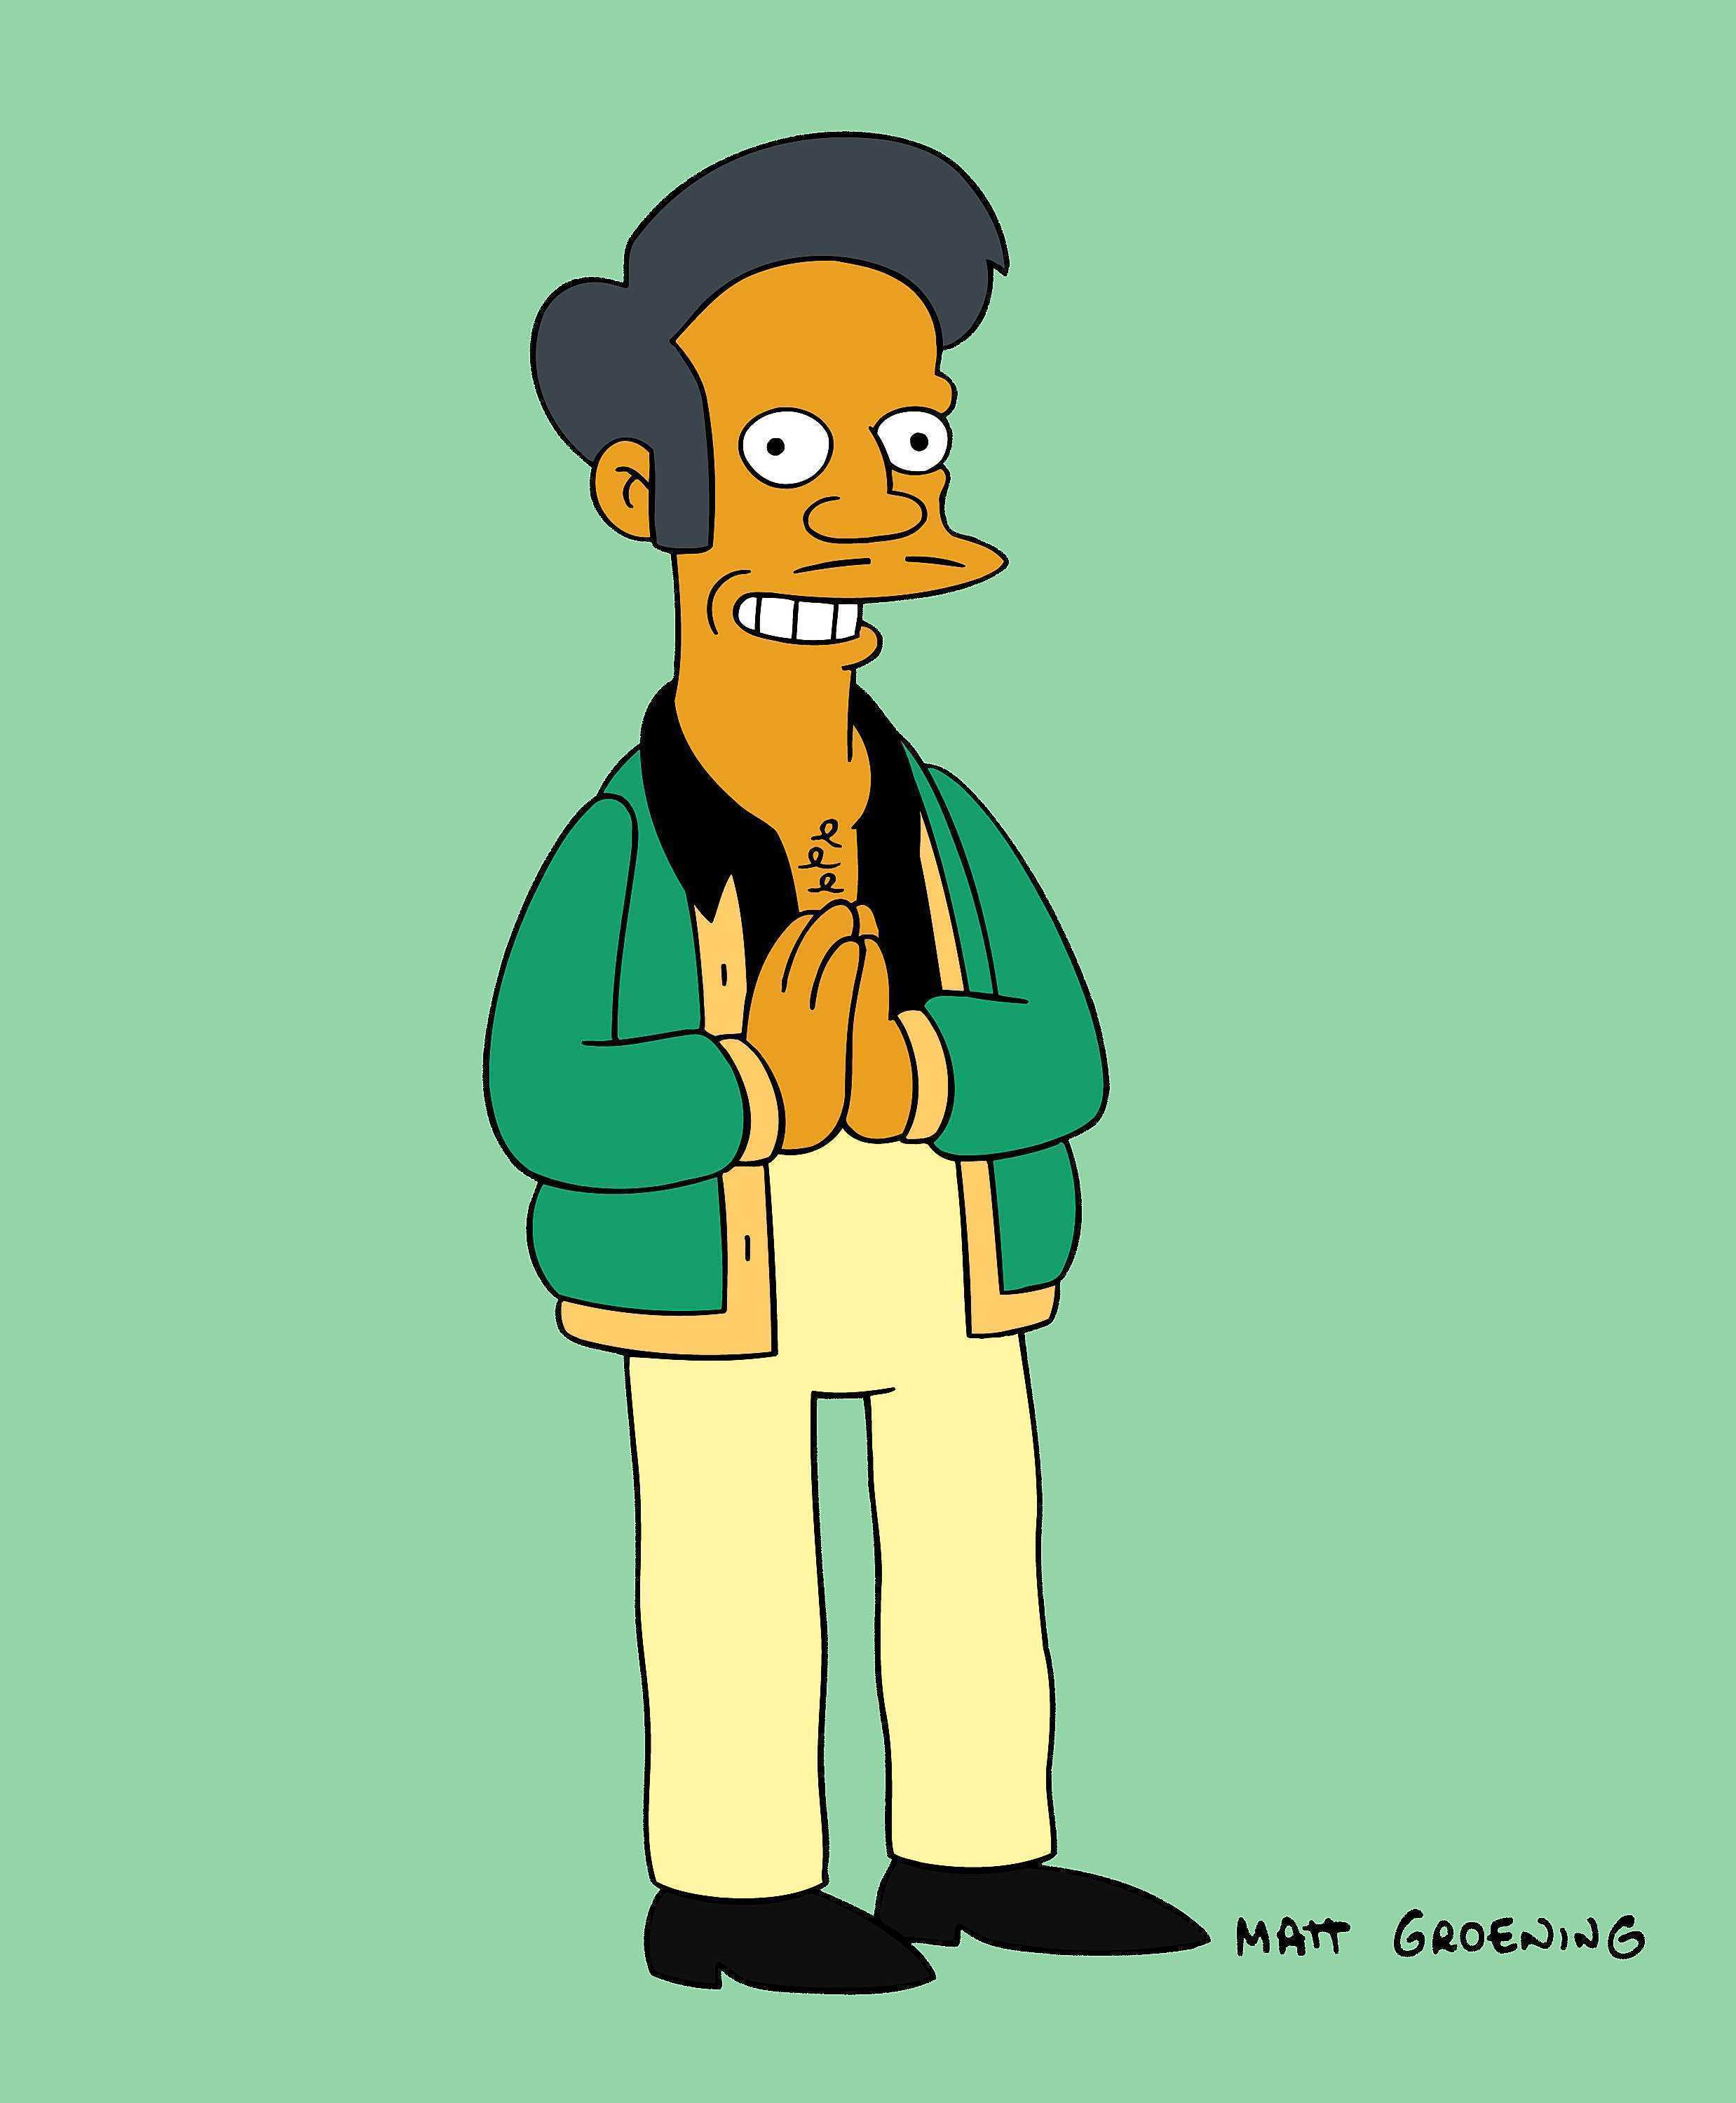 Fox execs address Apu controversy and the future of 'The Simpsons'